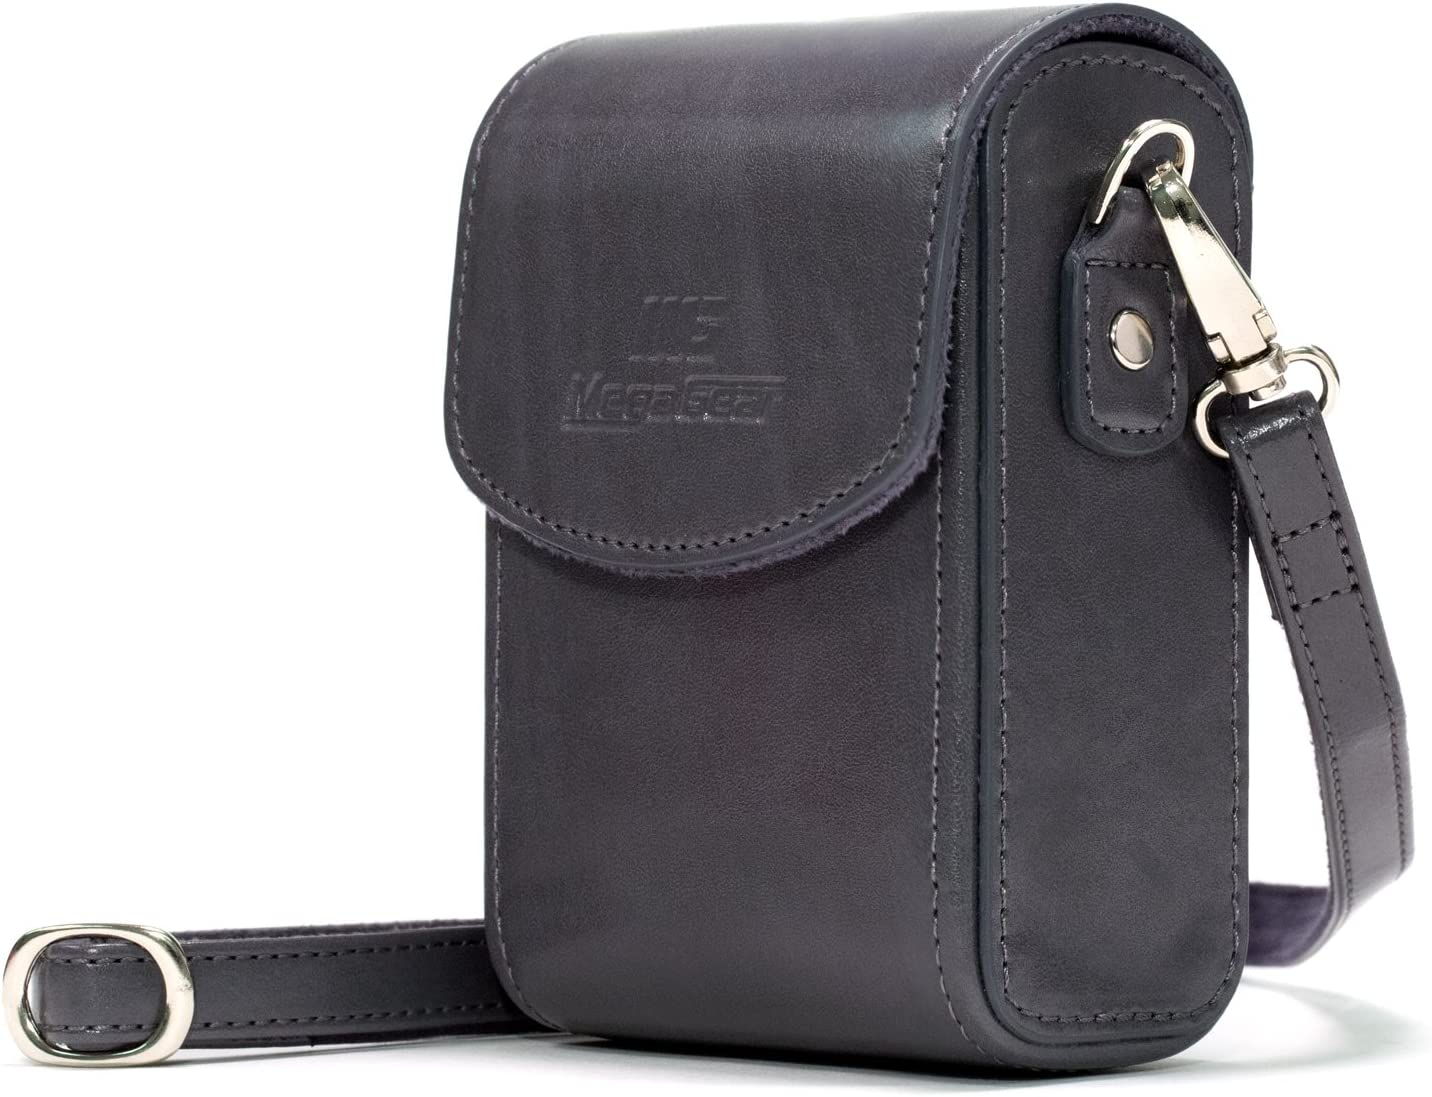 MegaGear Leather Camera Case with Strap Sony Cyb Boston Mall Beauty products Compatible